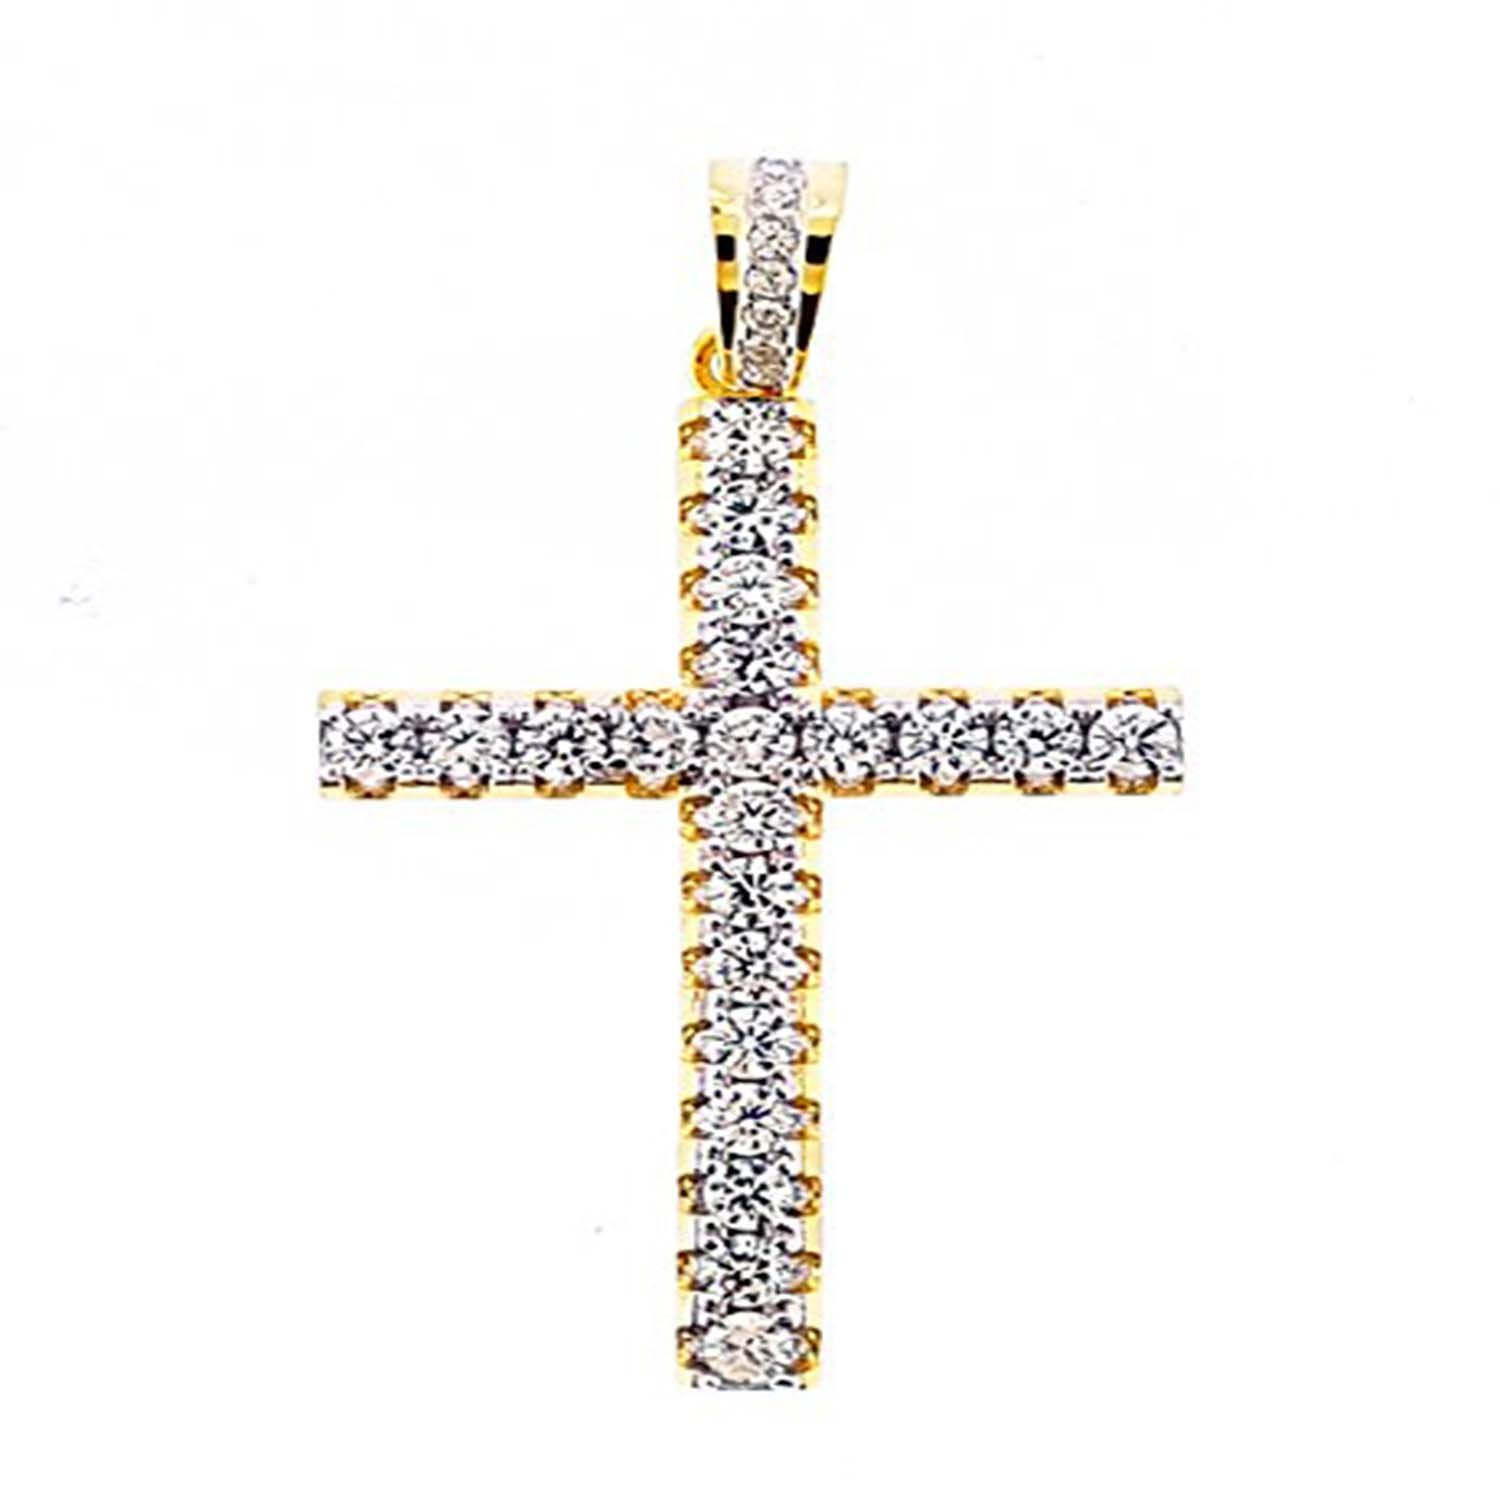 14K Yellow Gold Plated Simulated Diamond Studded Fashion Pendant Necklace With Chain Jewelry